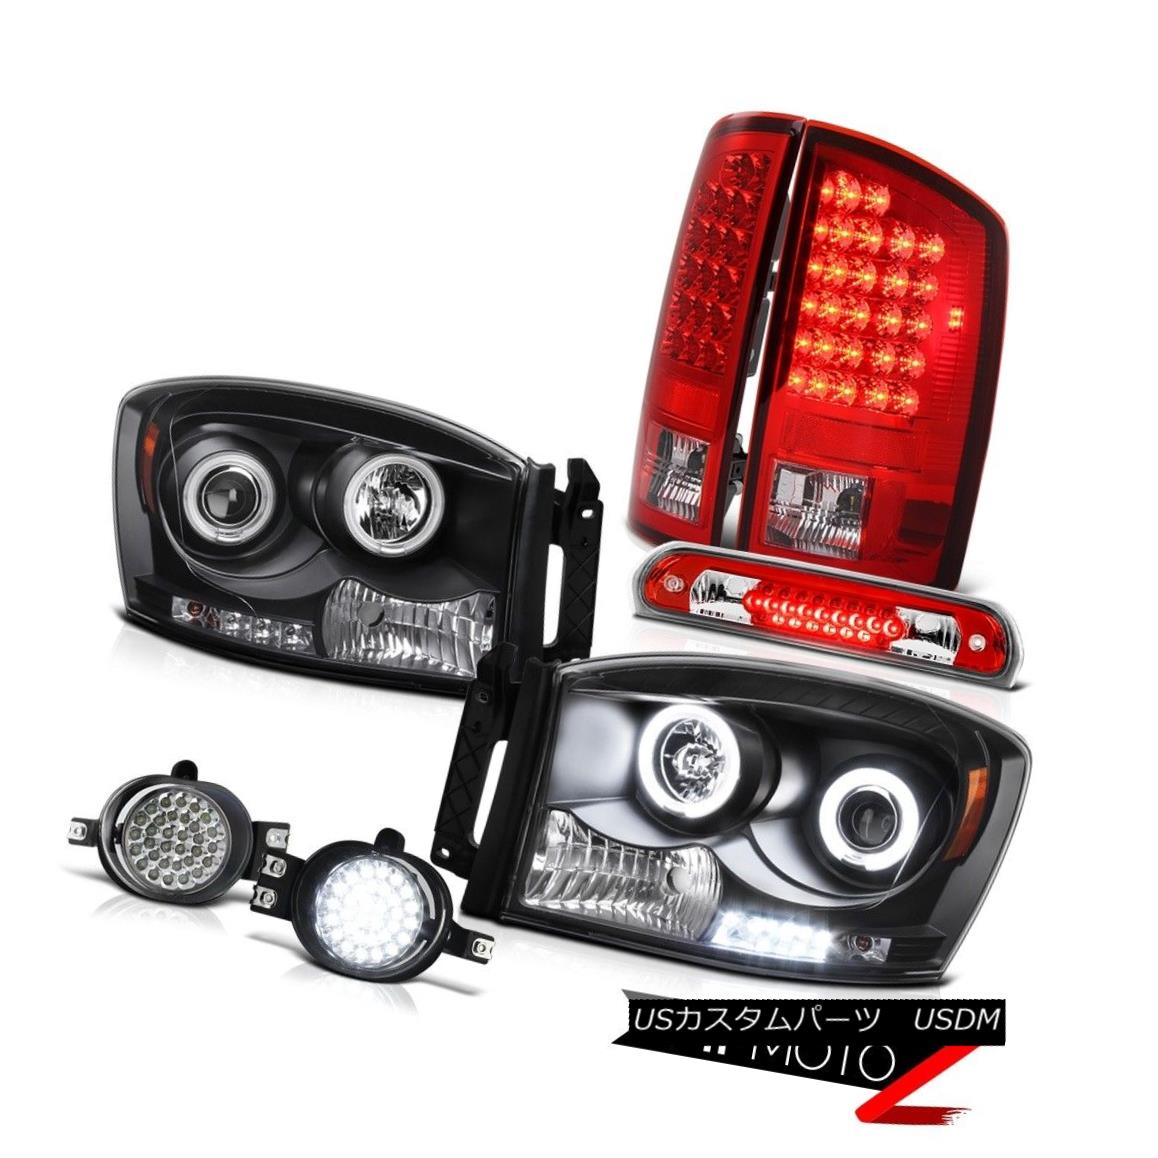 ヘッドライト Devil's Eye CCFL Headlights Red LED Tail Lights Fog 2006 Dodge Ram TurboDiesel 悪魔の目CCFLヘッドライト赤LEDテールライトフォグ2006 Dodge Ram TurboDiesel